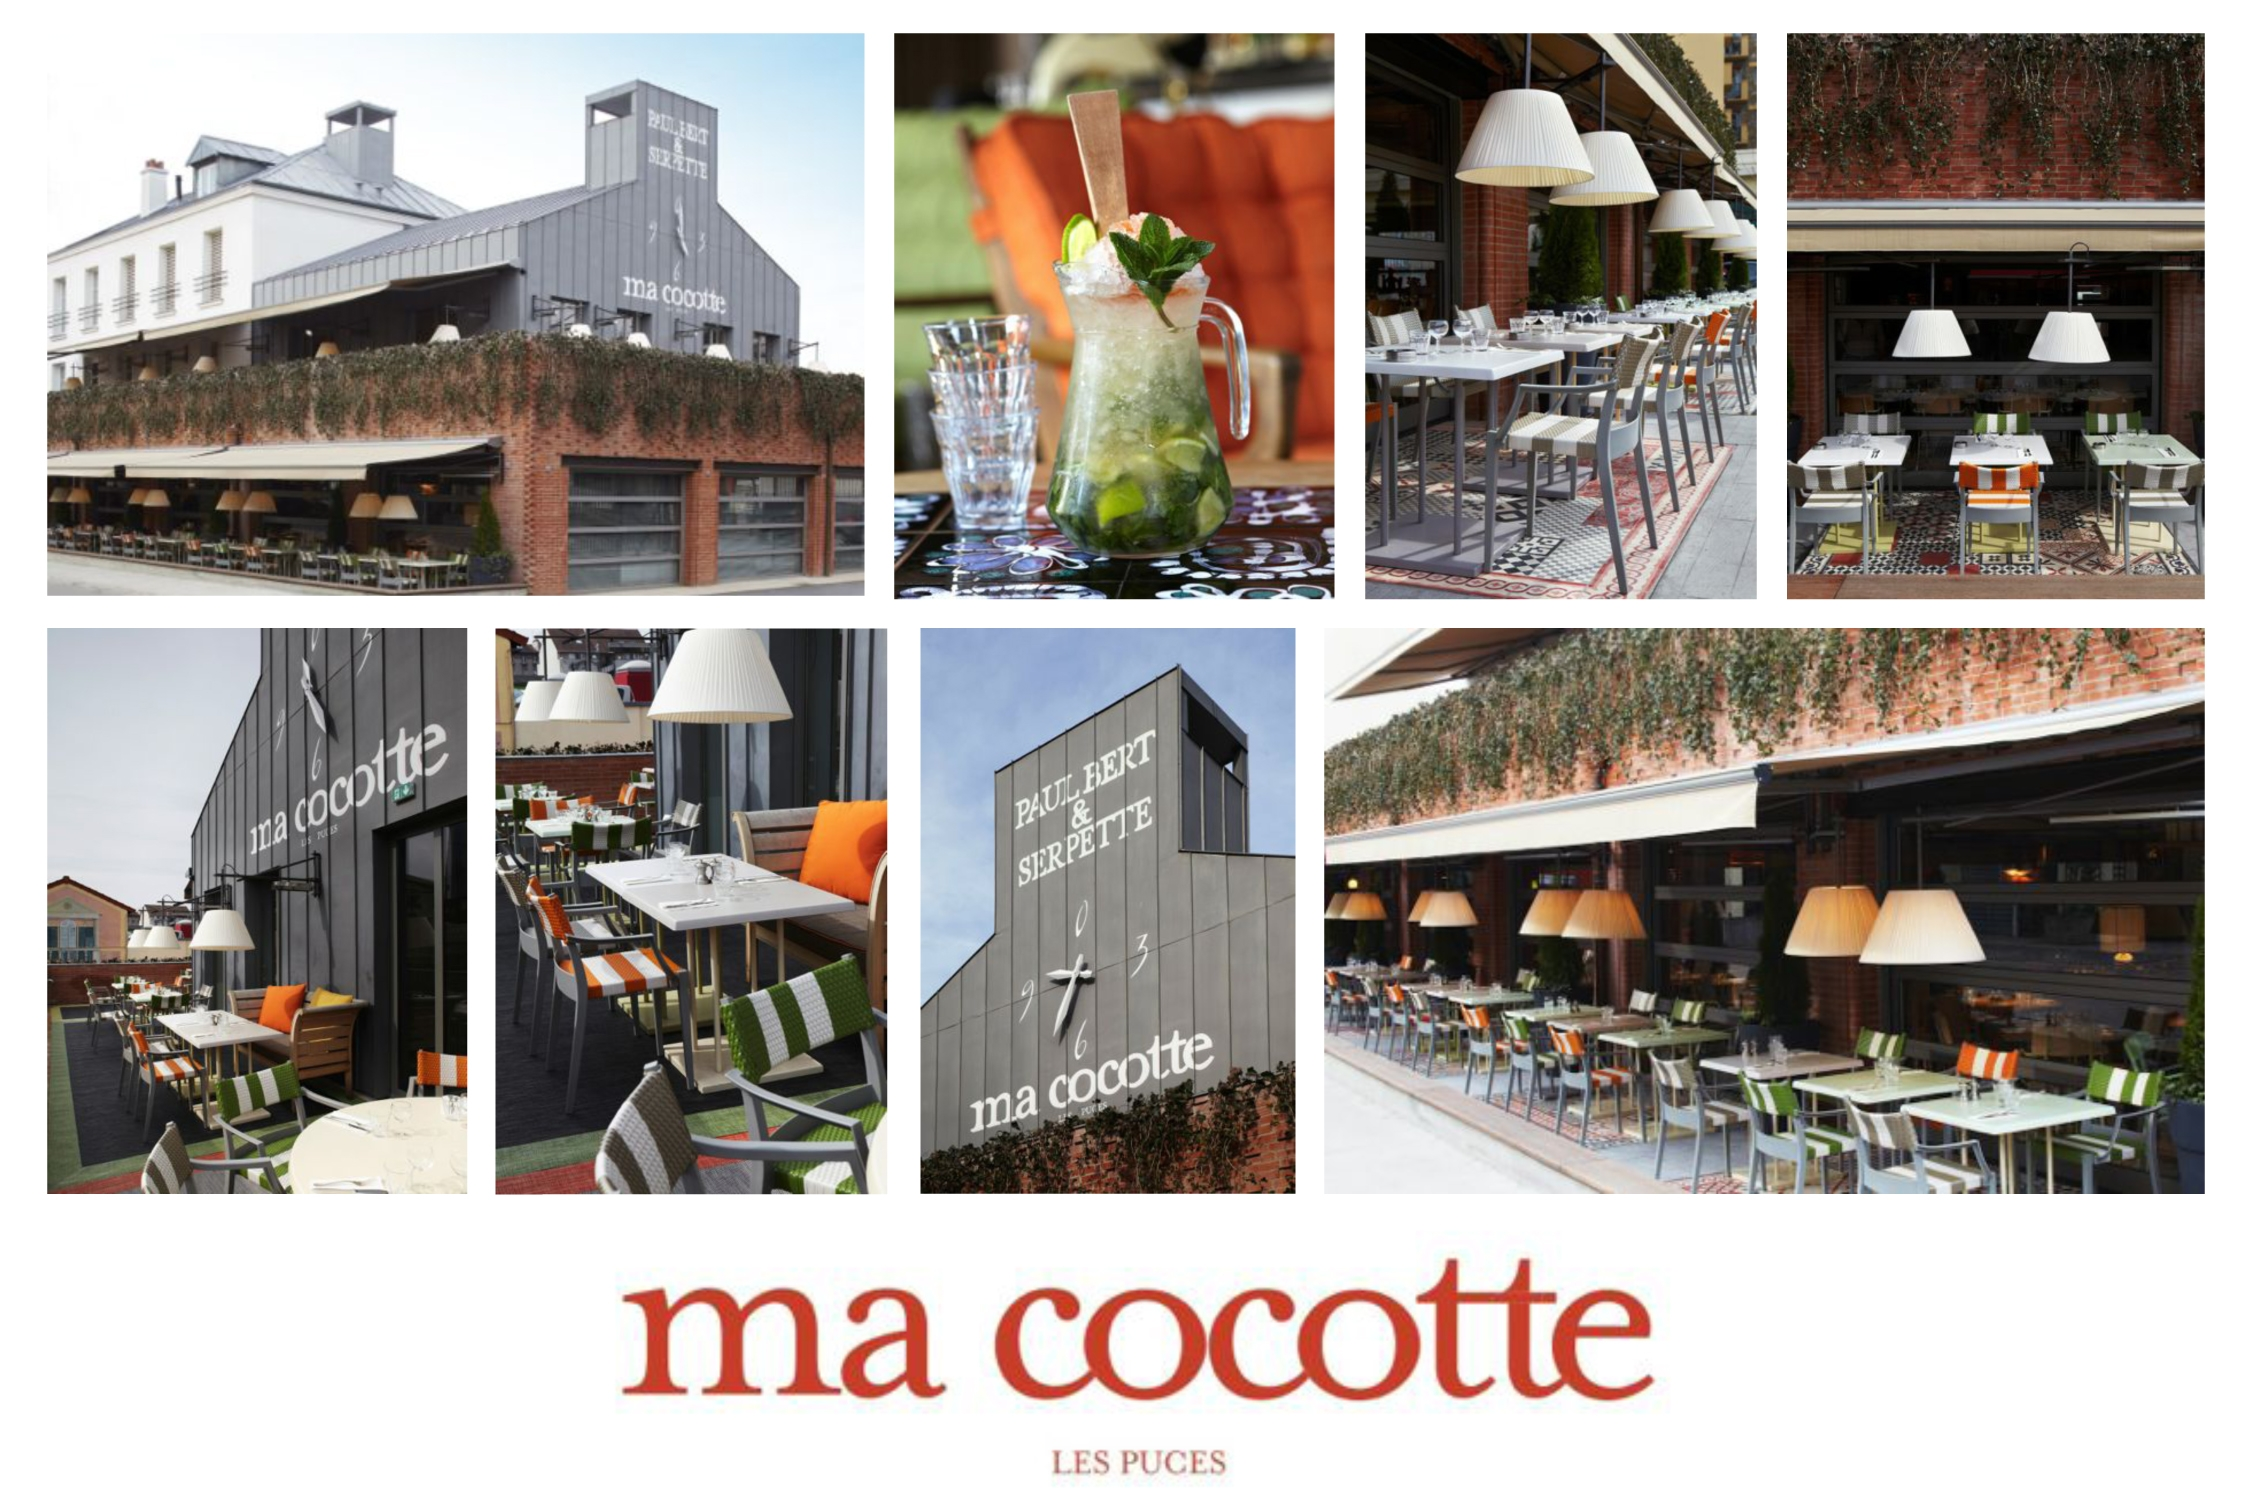 ma_cocotte_ete2013_v2.ppt